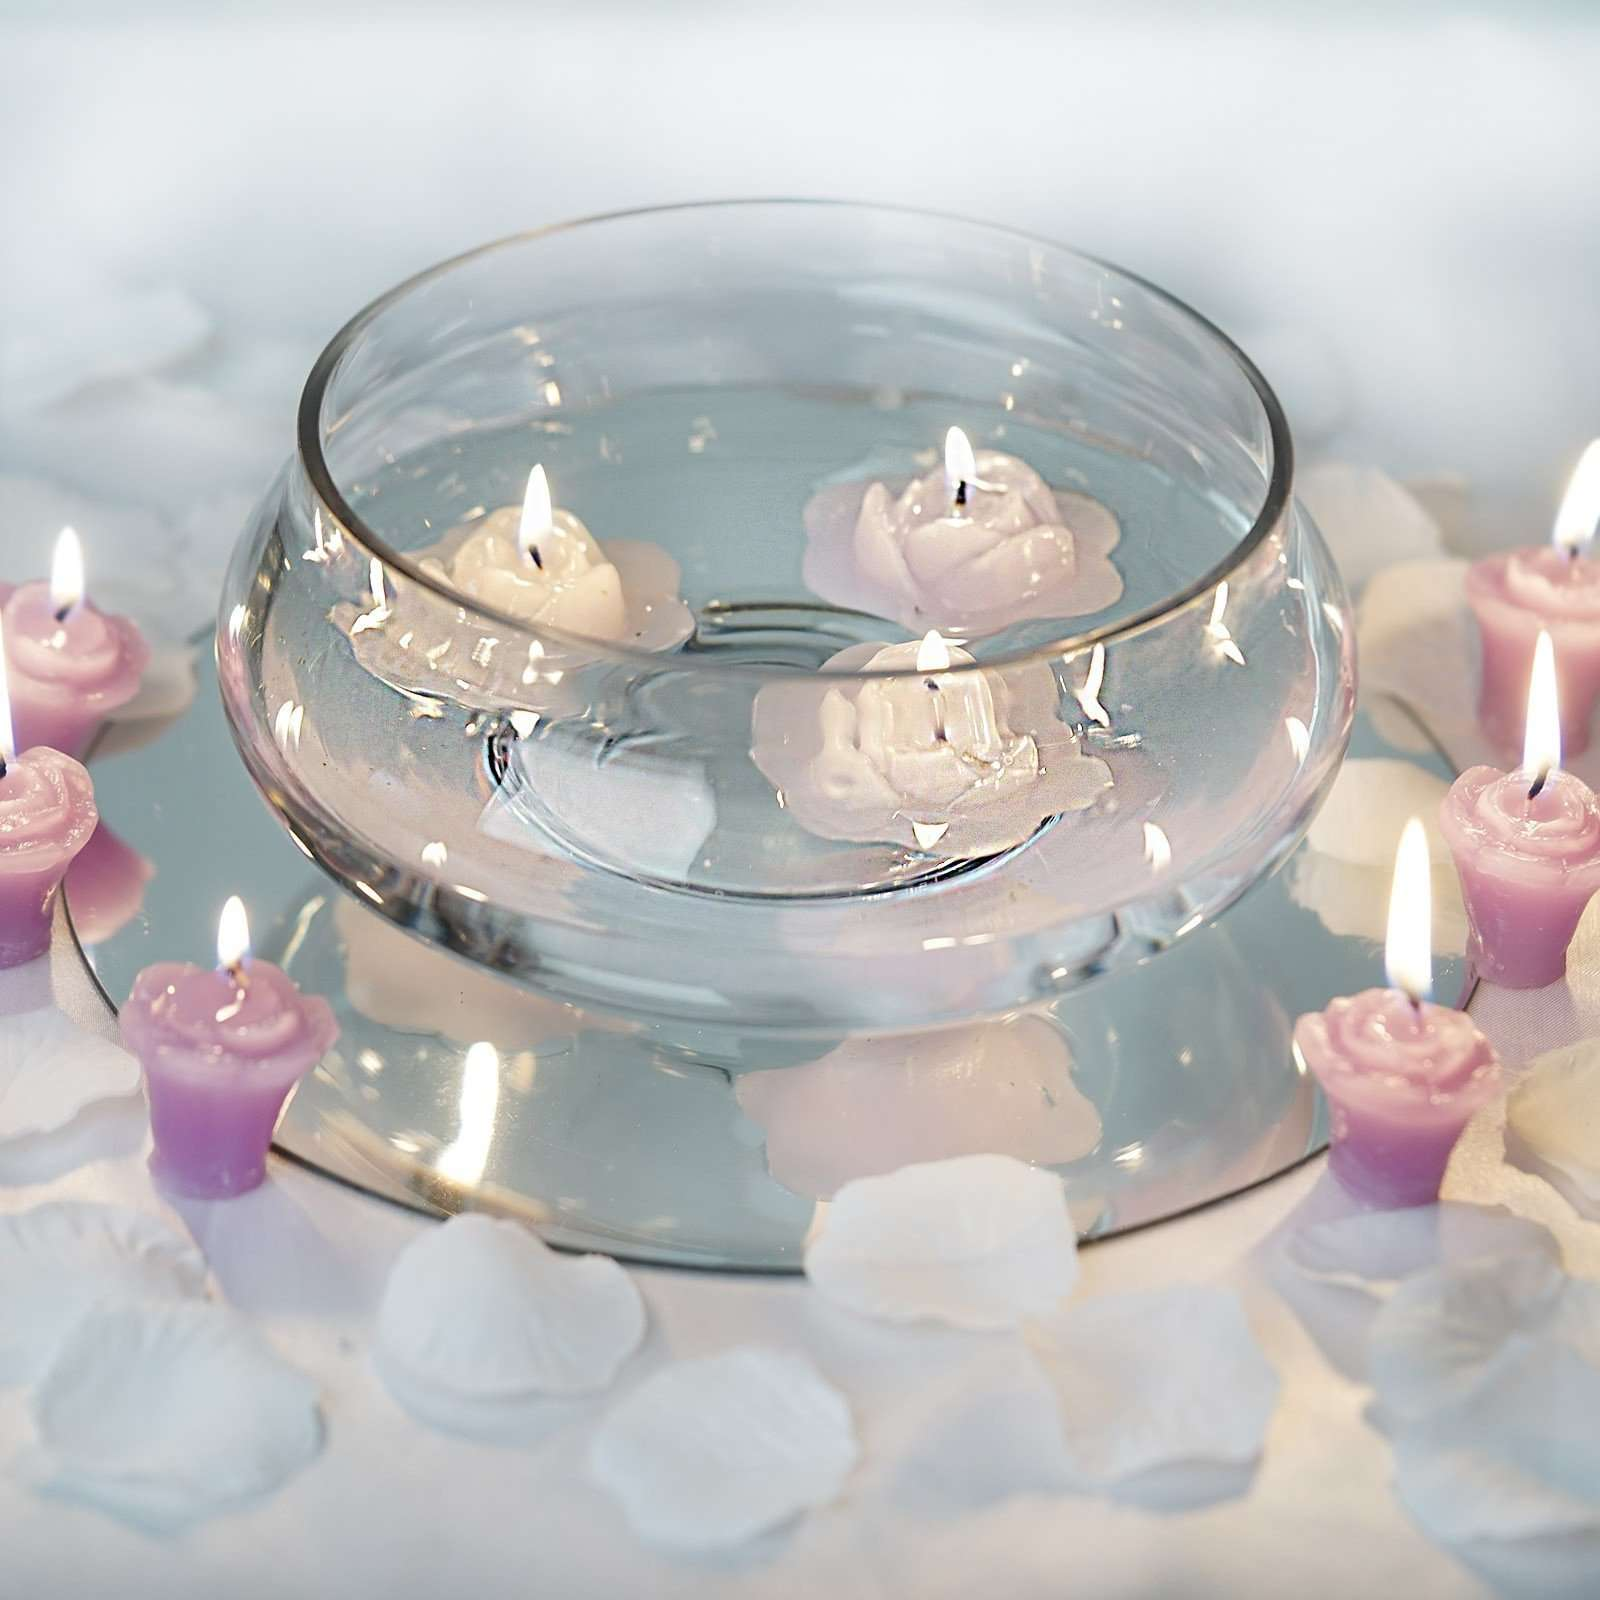 7 Decorating Floating Candle Glass Bowls For Wedding Birthday Party